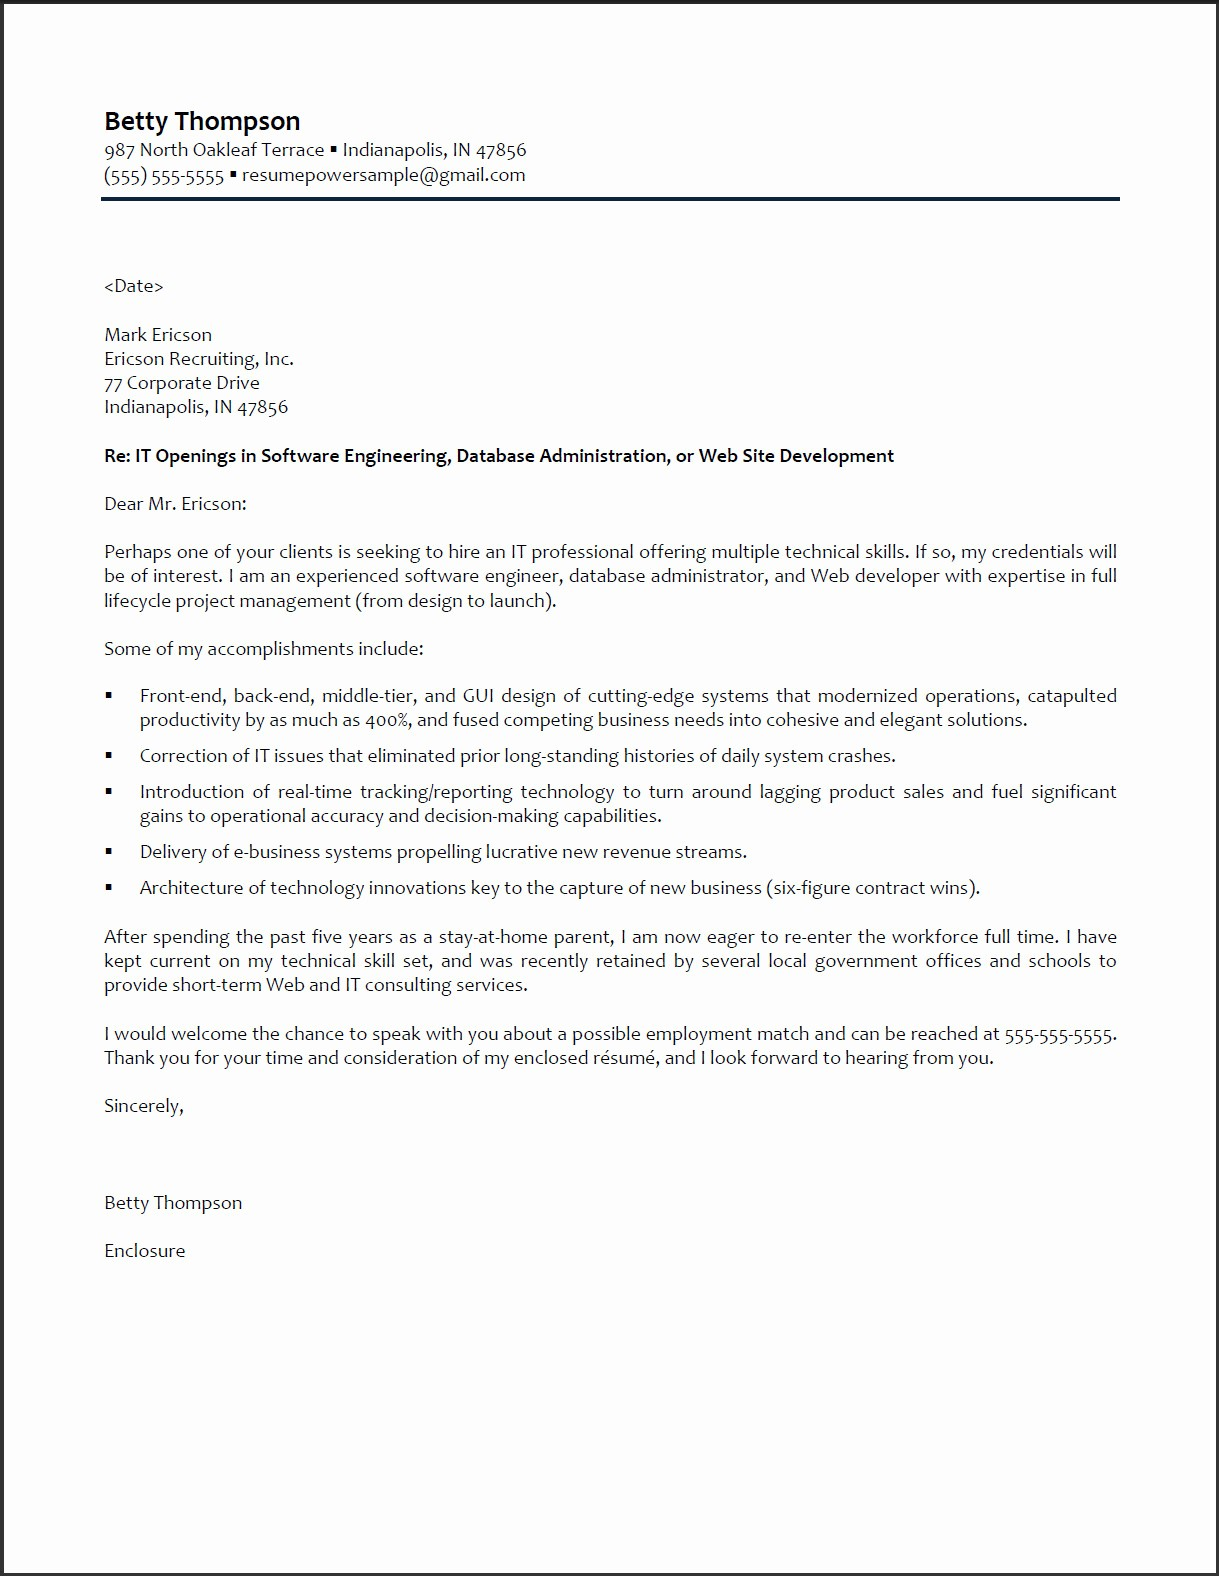 Cover Letter Templates for Resumes Unique software Engineer Cover Letter